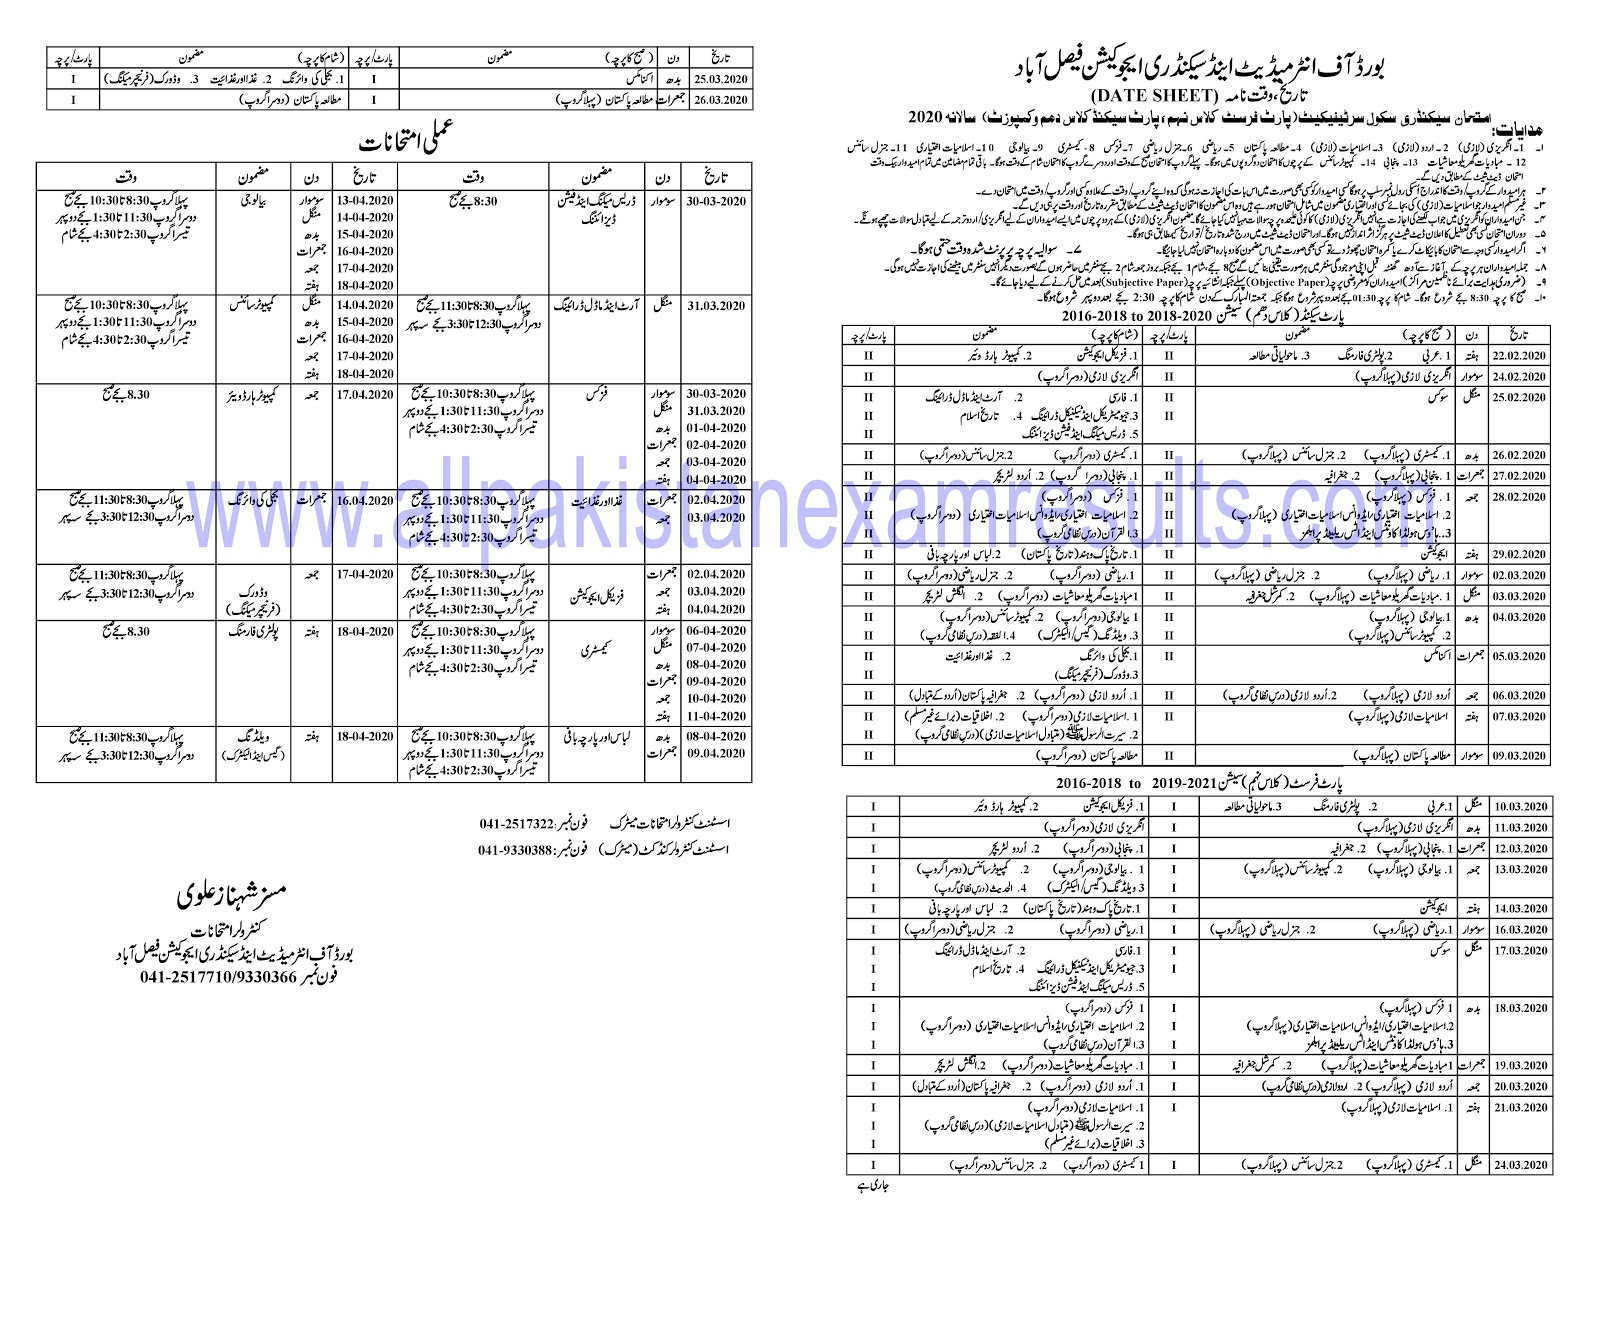 bise faisalabad 9th and 10th date sheet 2020